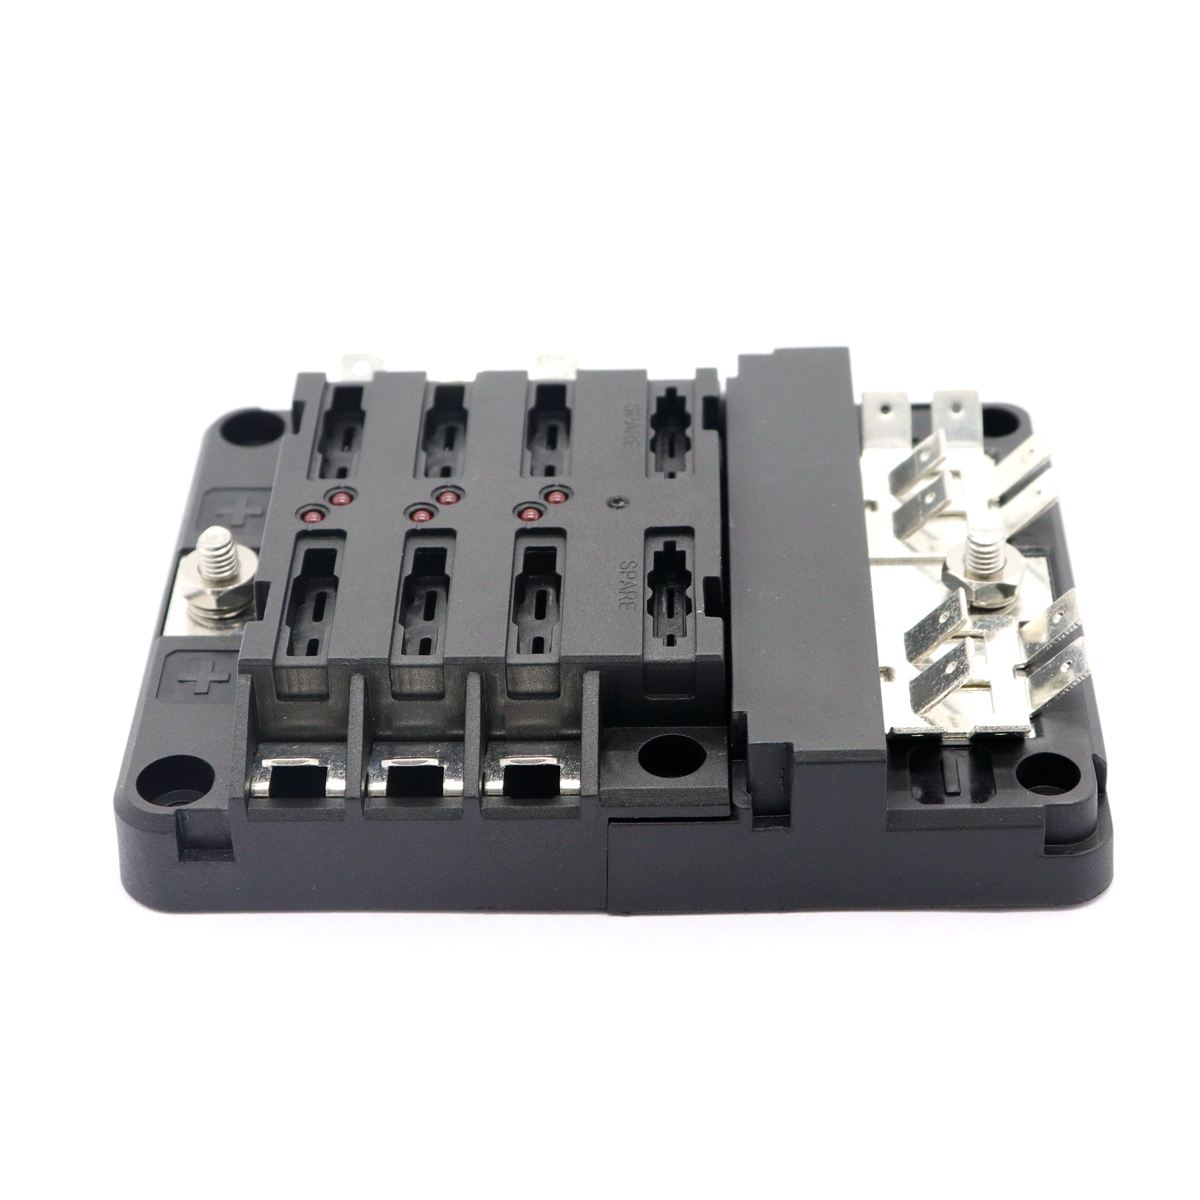 small resolution of universal car blade fuse block 6 circuits ground negative cover abs plastic for bus bar cover boat marine car accessory tool in fuses from automobiles